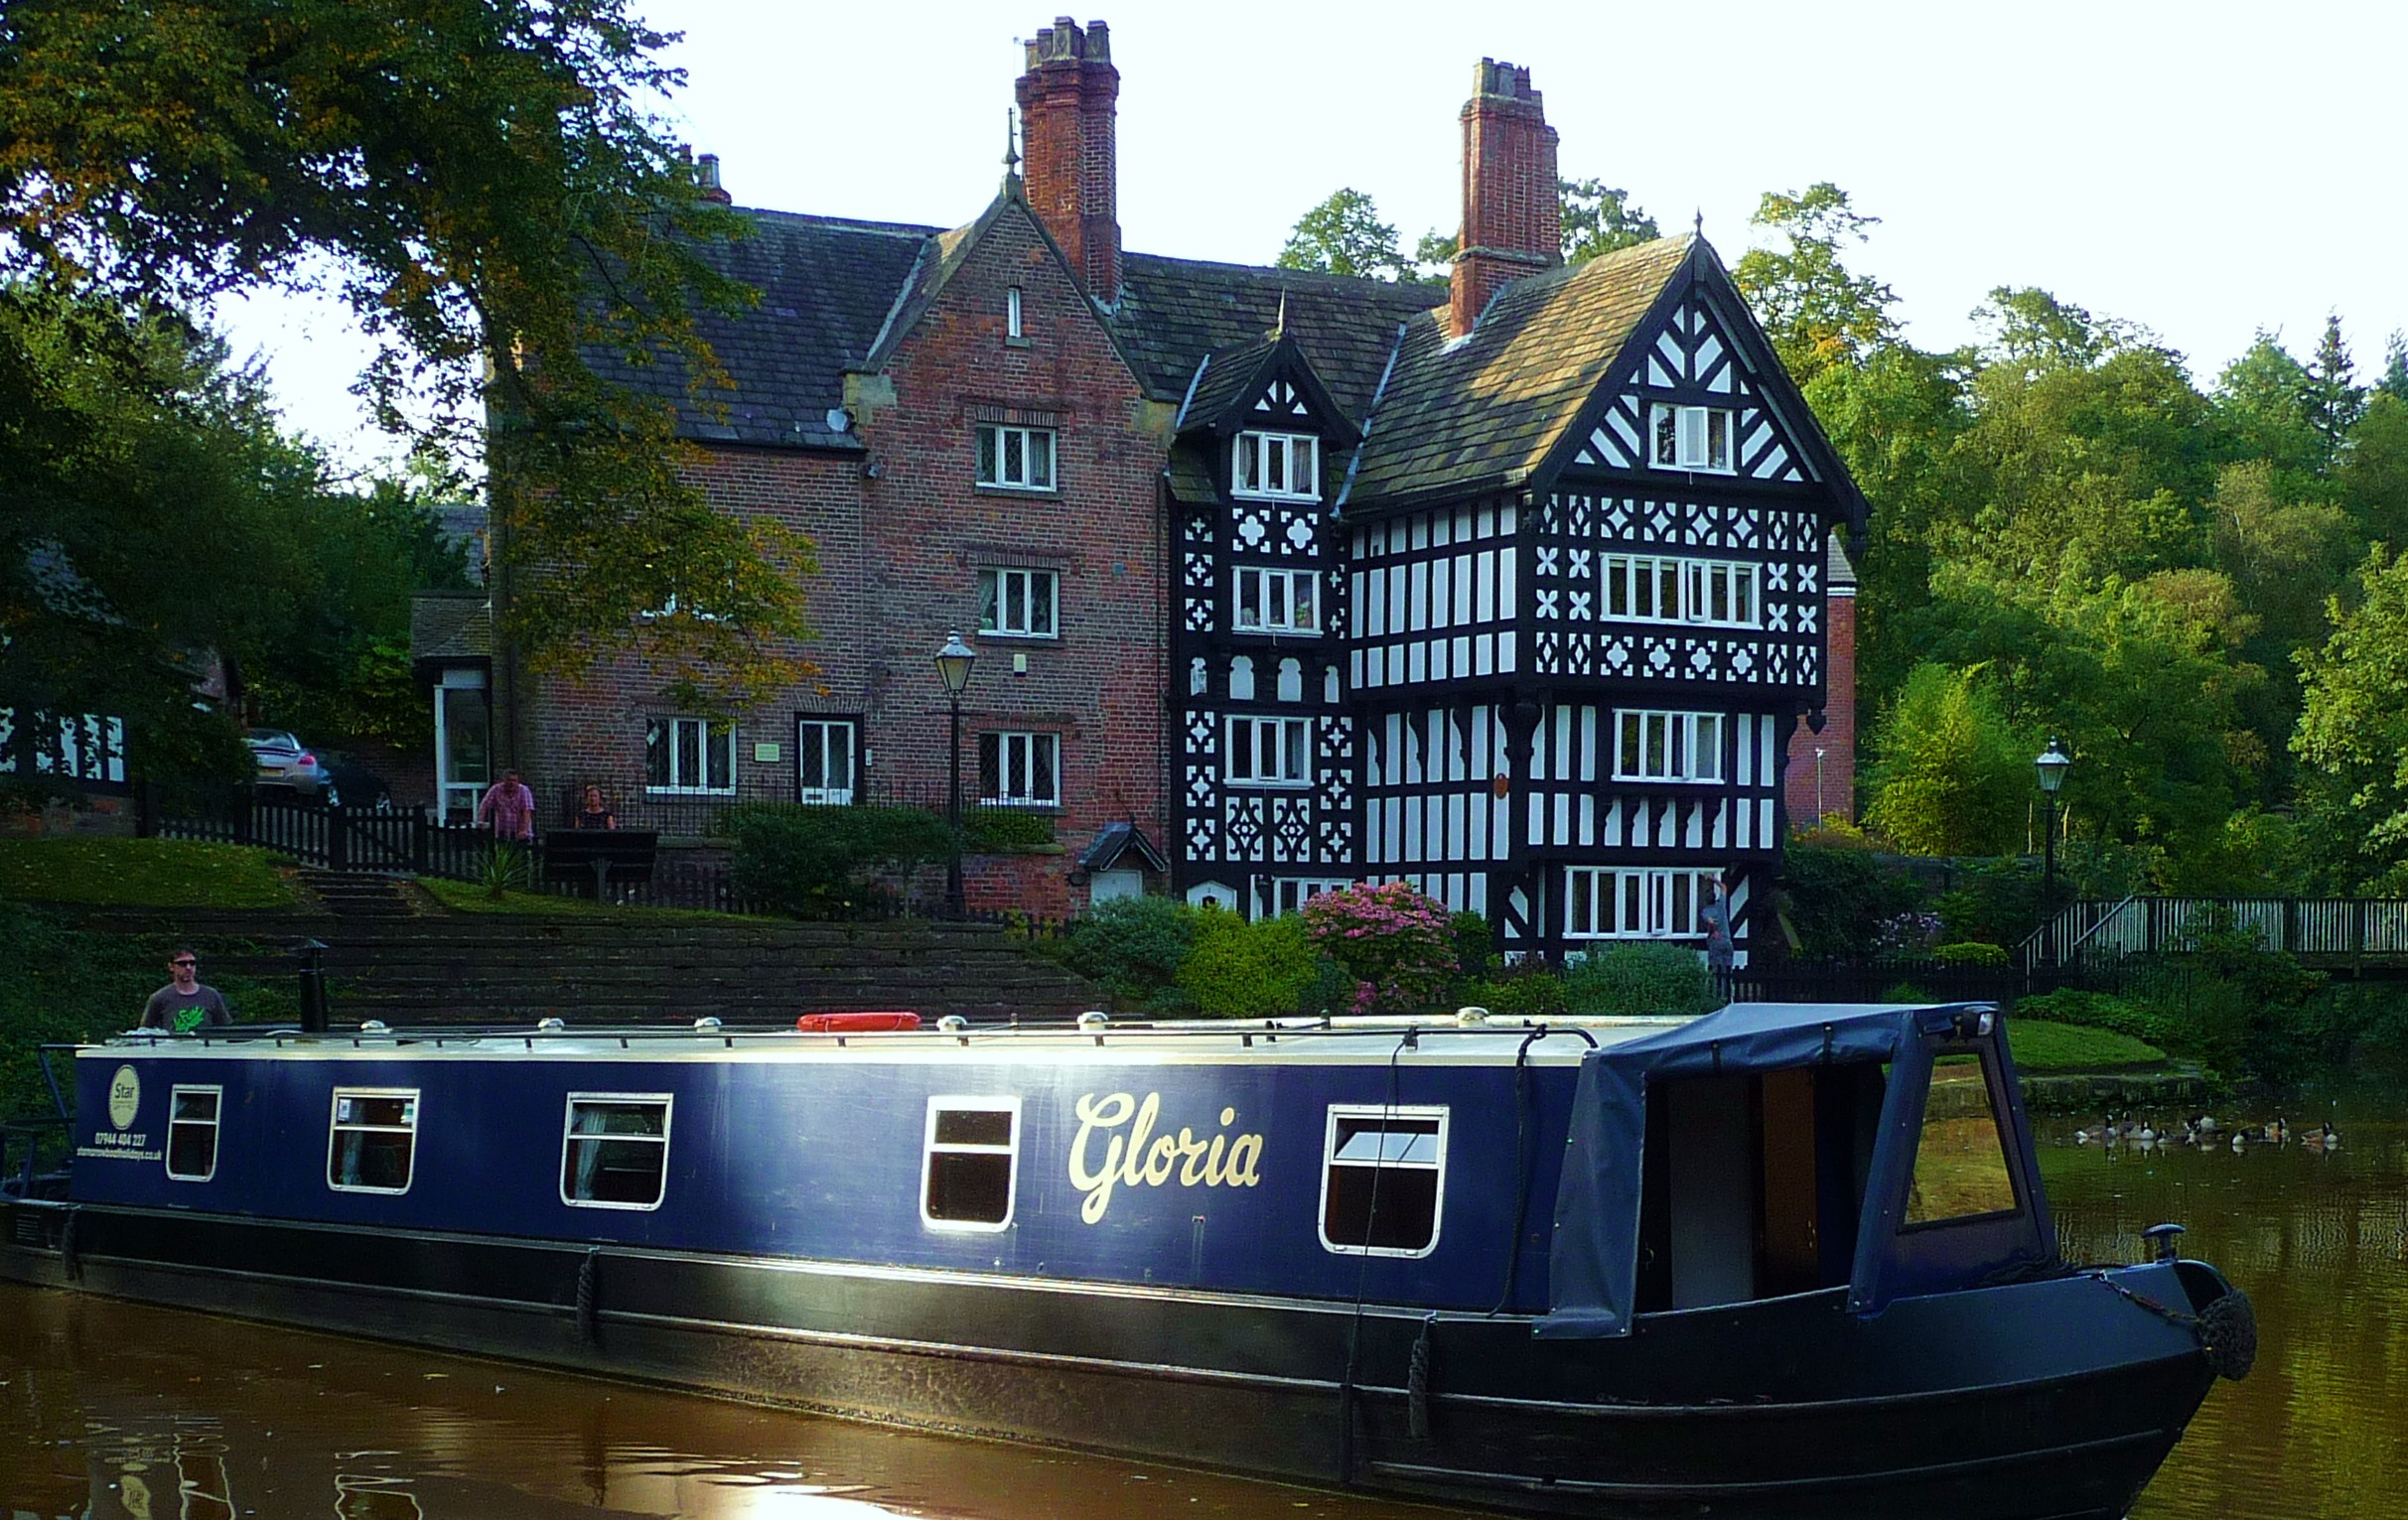 United Kingdom, Manchester. 'Gloria '  Star Narrowboat Holidays